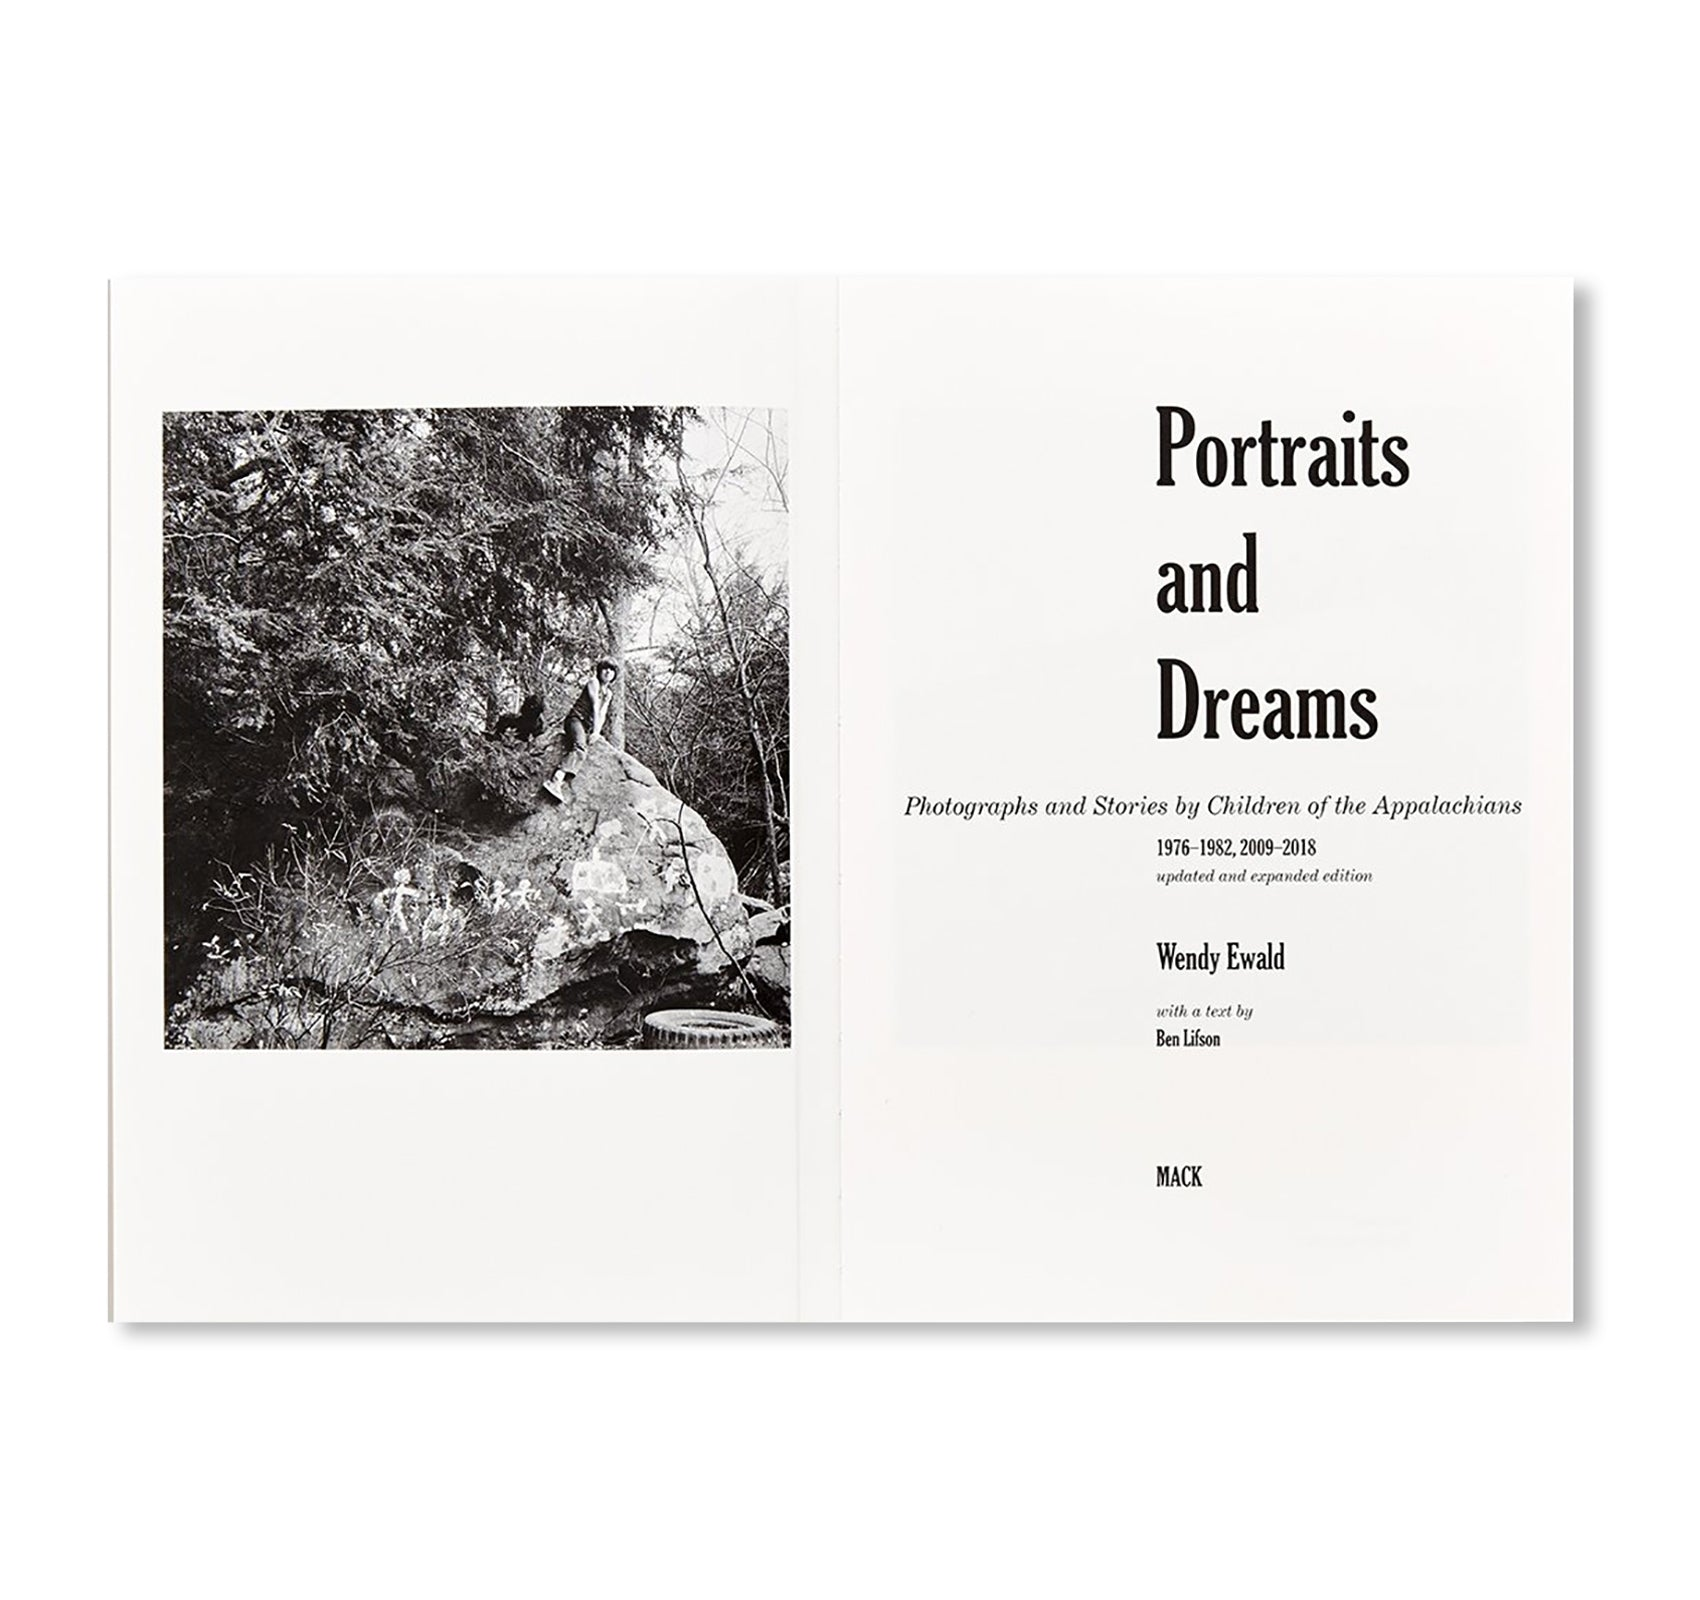 PORTRAITS AND DREAMS by Wendy Ewald